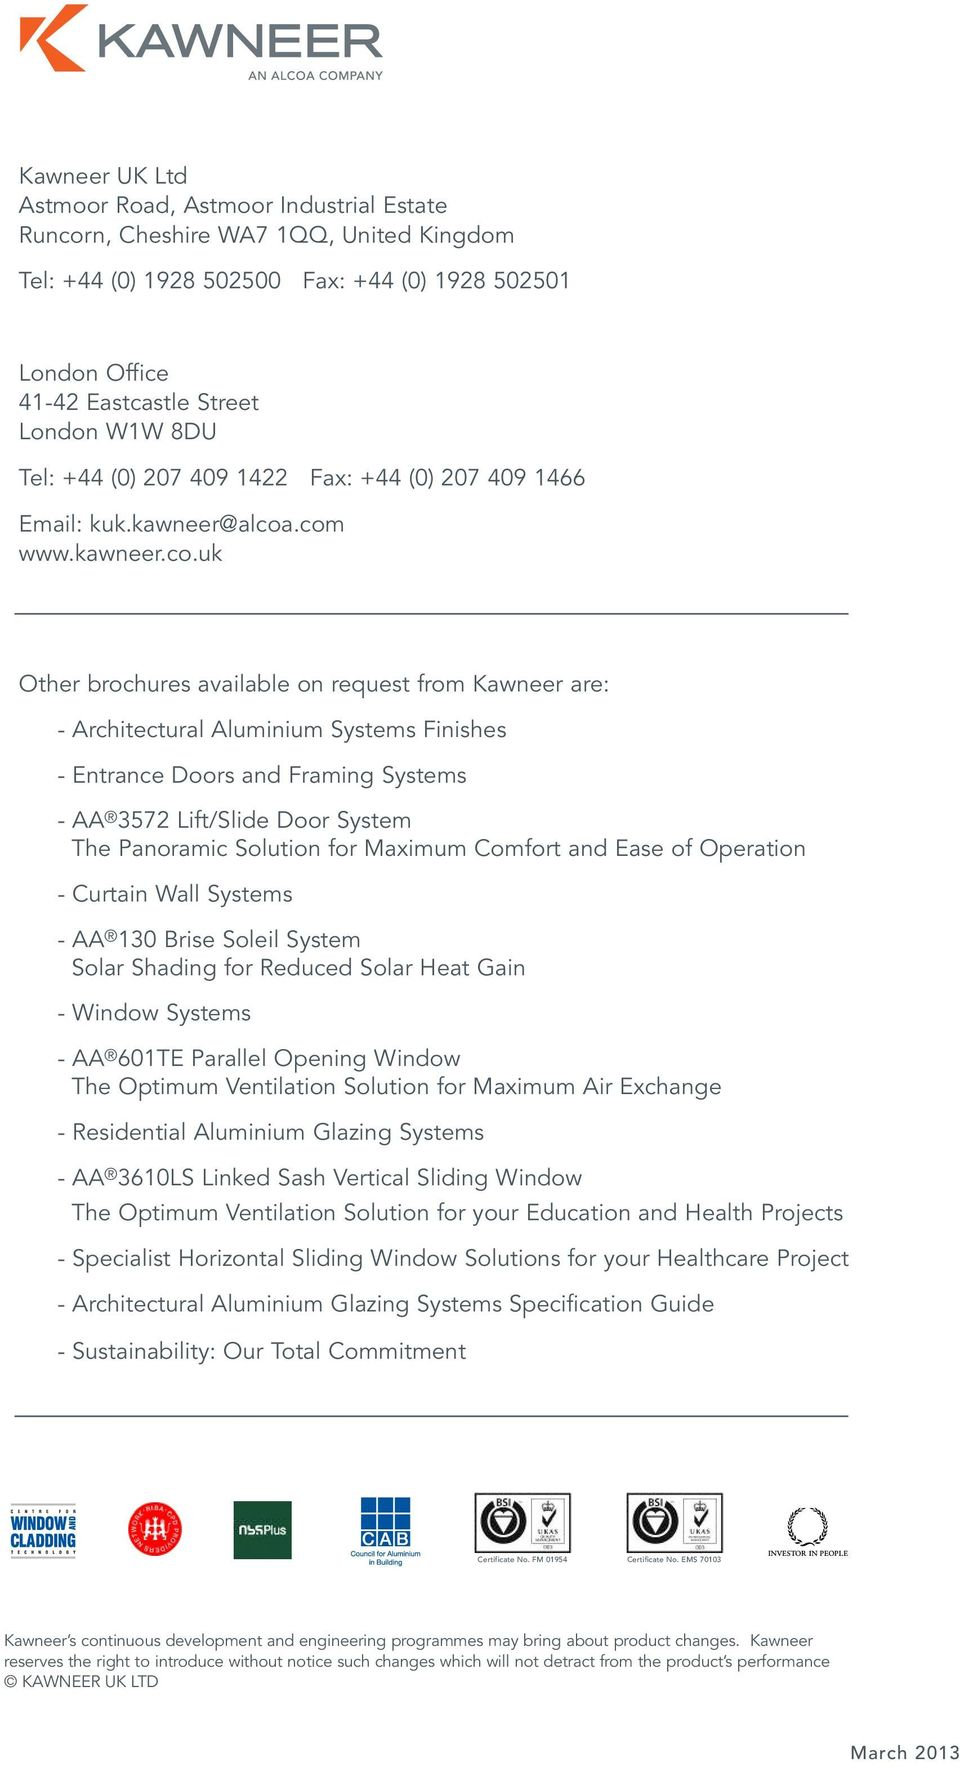 .com www.kawneer.co.uk Other brochures available on request from Kawneer are: - Architectural Aluminium Systems Finishes - Entrance Doors and Framing Systems - AA 3572 Lift/Slide Door System The